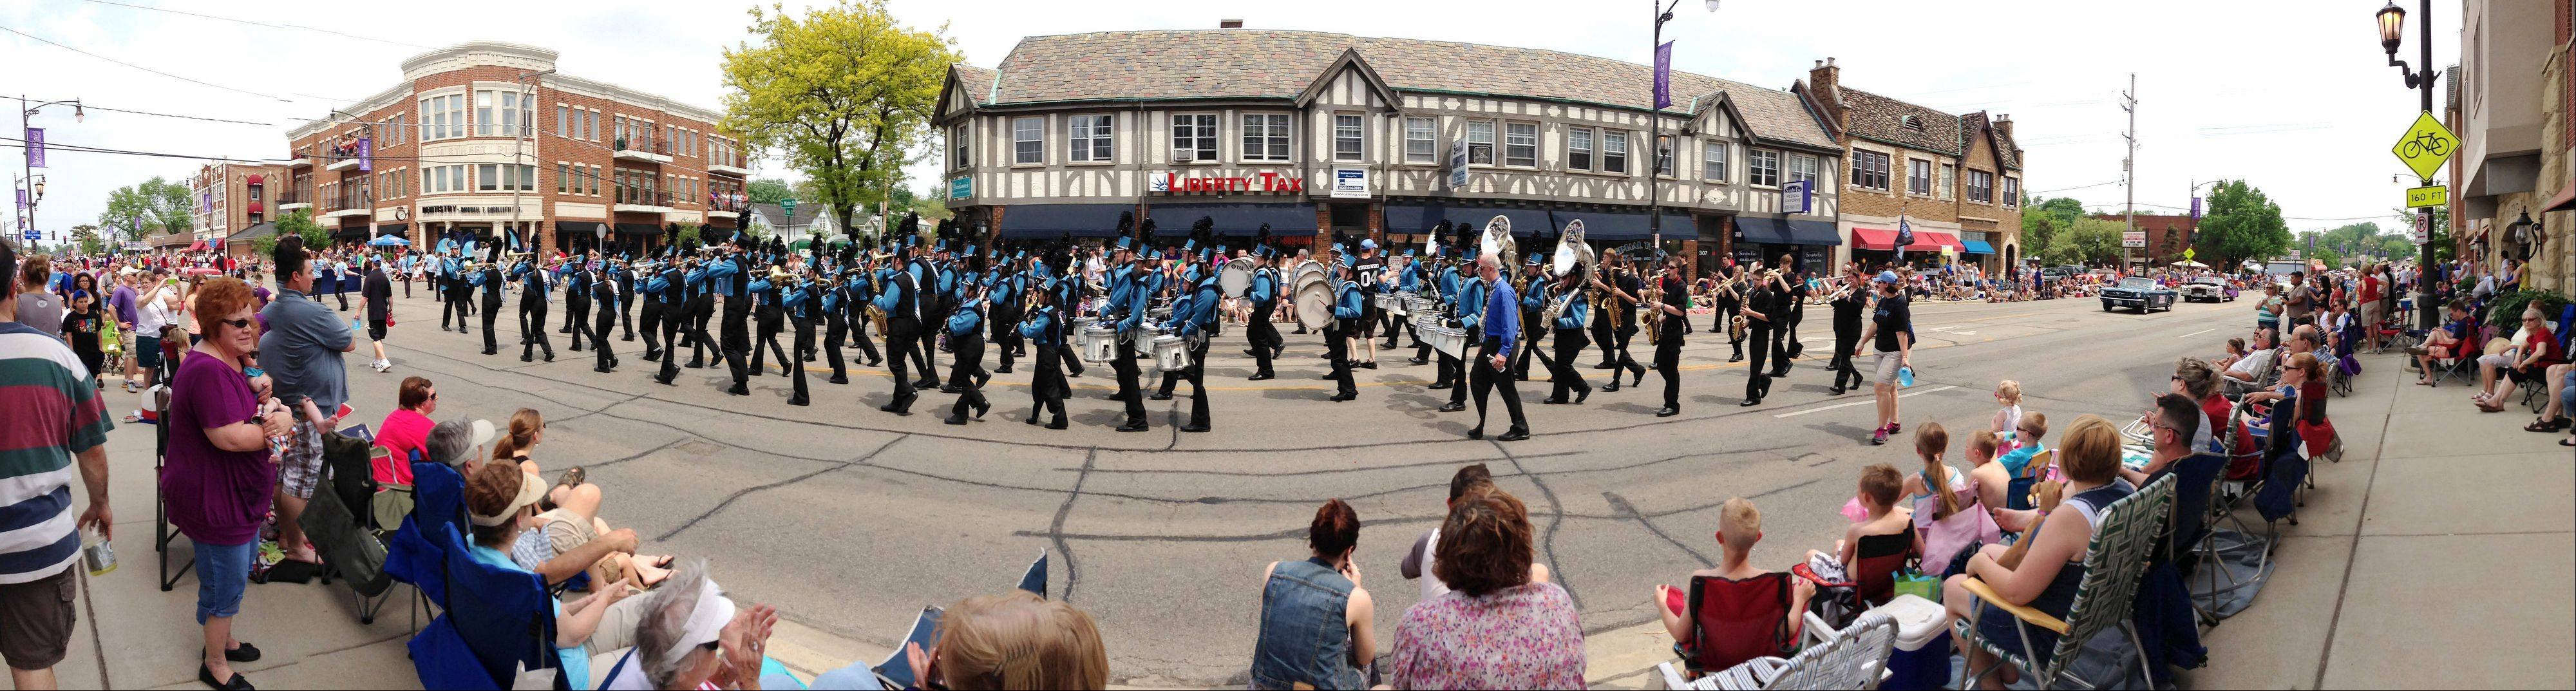 The Main Street parade! What would summer be without the marching bands on Main Street, hot weather, flags, and enthusiastic crowds lining the street? Events like this are popular with photographers sporting all sorts of cameras, including cellphone cameras. This photo of the Willowbrook High School marching band in Lombard's Lilac Parade was taken in the panorama mode with my iPhone 5 cellphone camera. When used like this, it bends reality a little, along with the street, but I think it is an interesting effect.